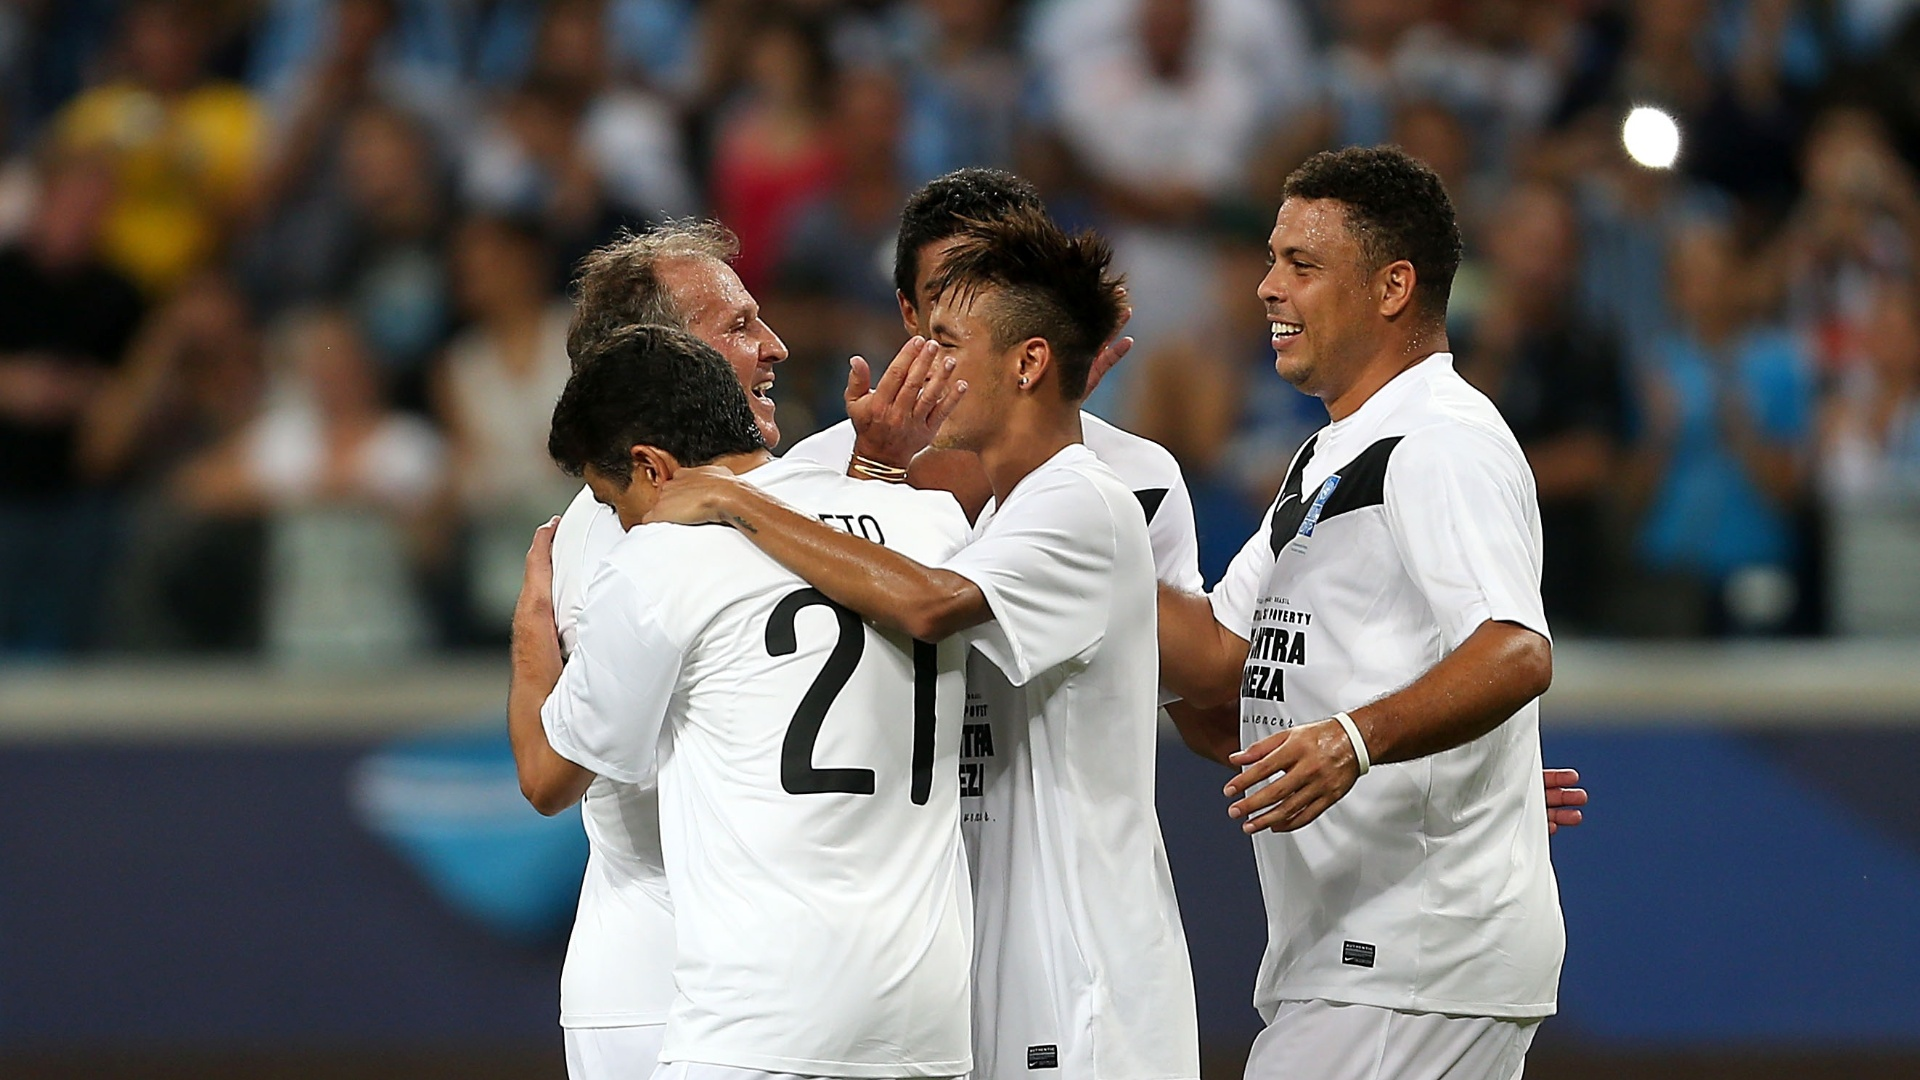 Bebeto, Neymar comemoram gol com Zico e Ronaldo Nazrio Jogo Contra a Pobreza, em Porto Alegre, na Arena Grmio (19/12/2012)